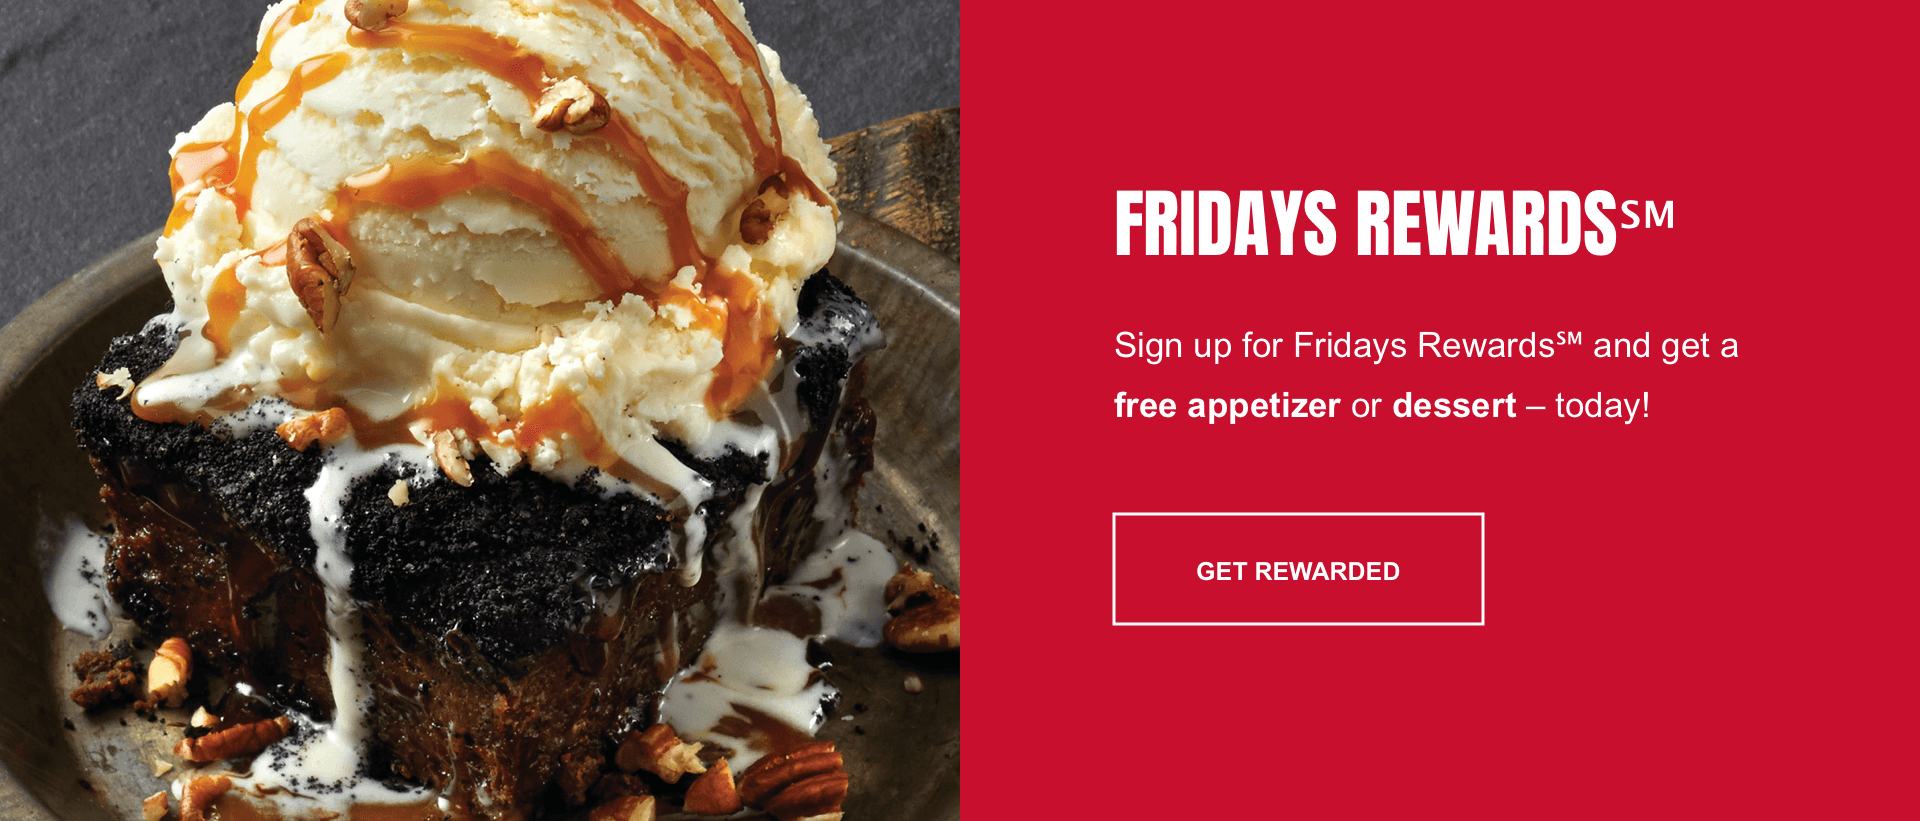 Section 4 redesign concept of TGI Fridays' website.